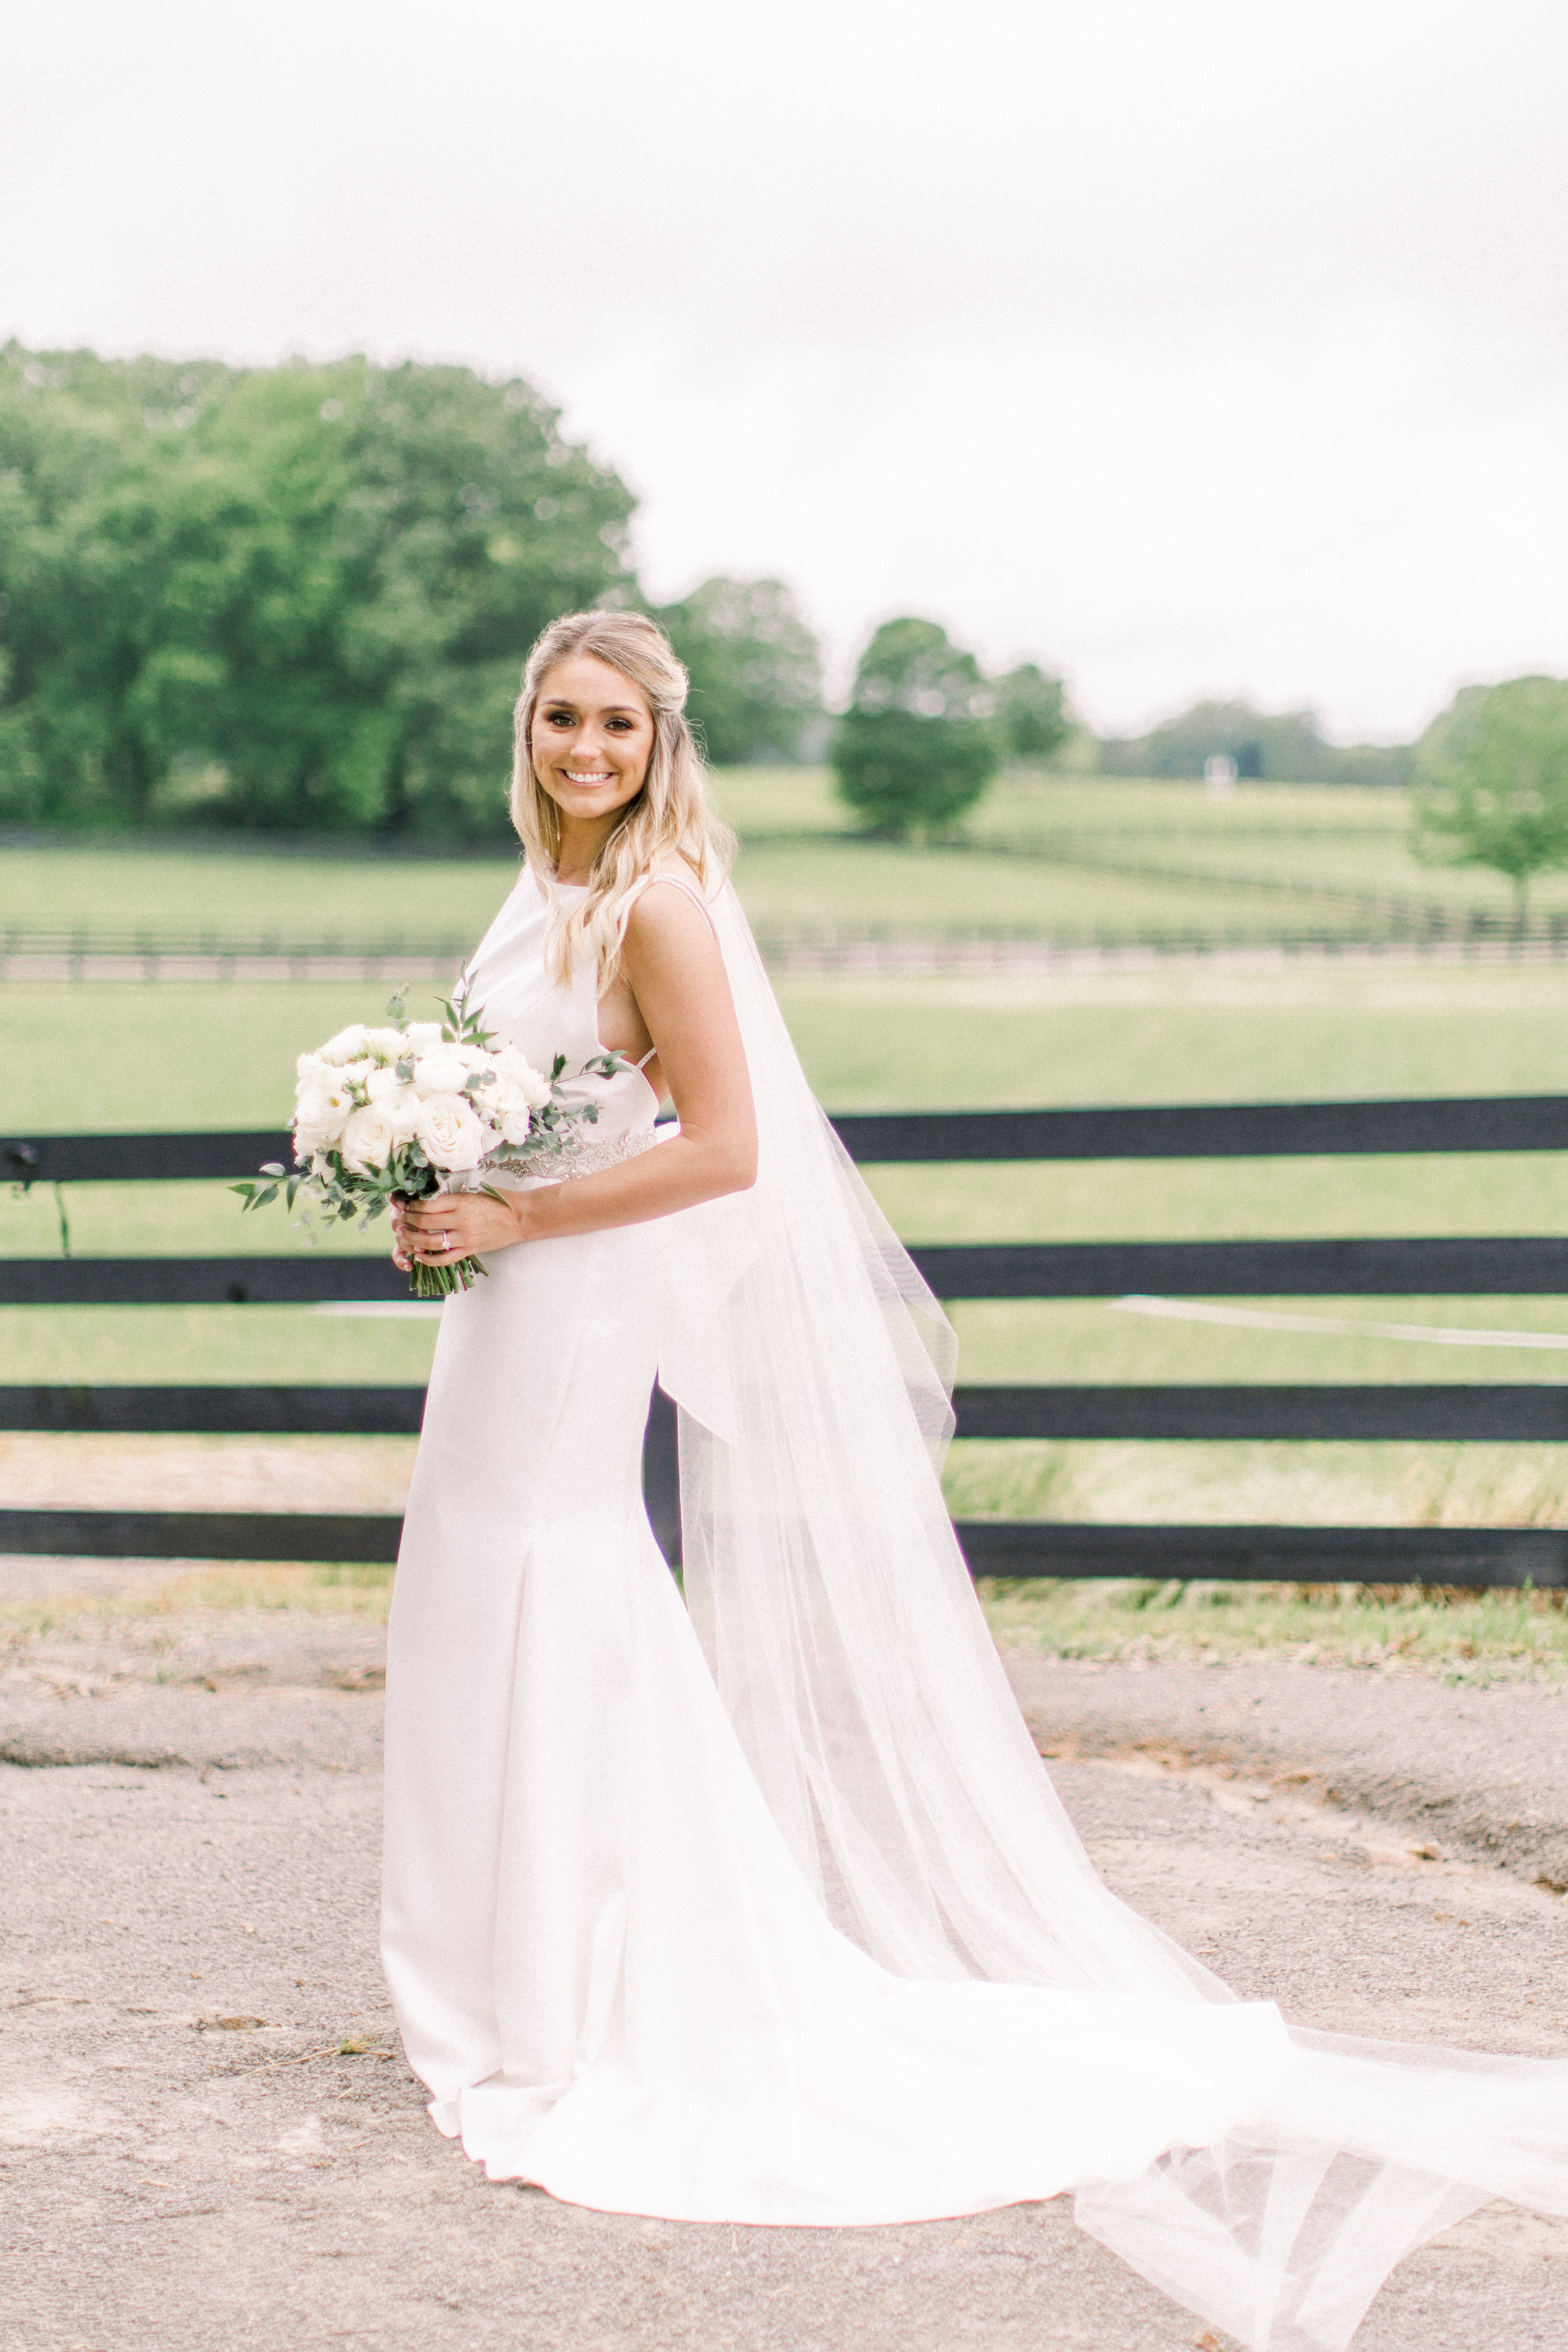 Wren & Rose Floral Design | Shelby Wren Boykin | Mississippi Wedding Florist | Providence Hill Farm | Elle James Bridal